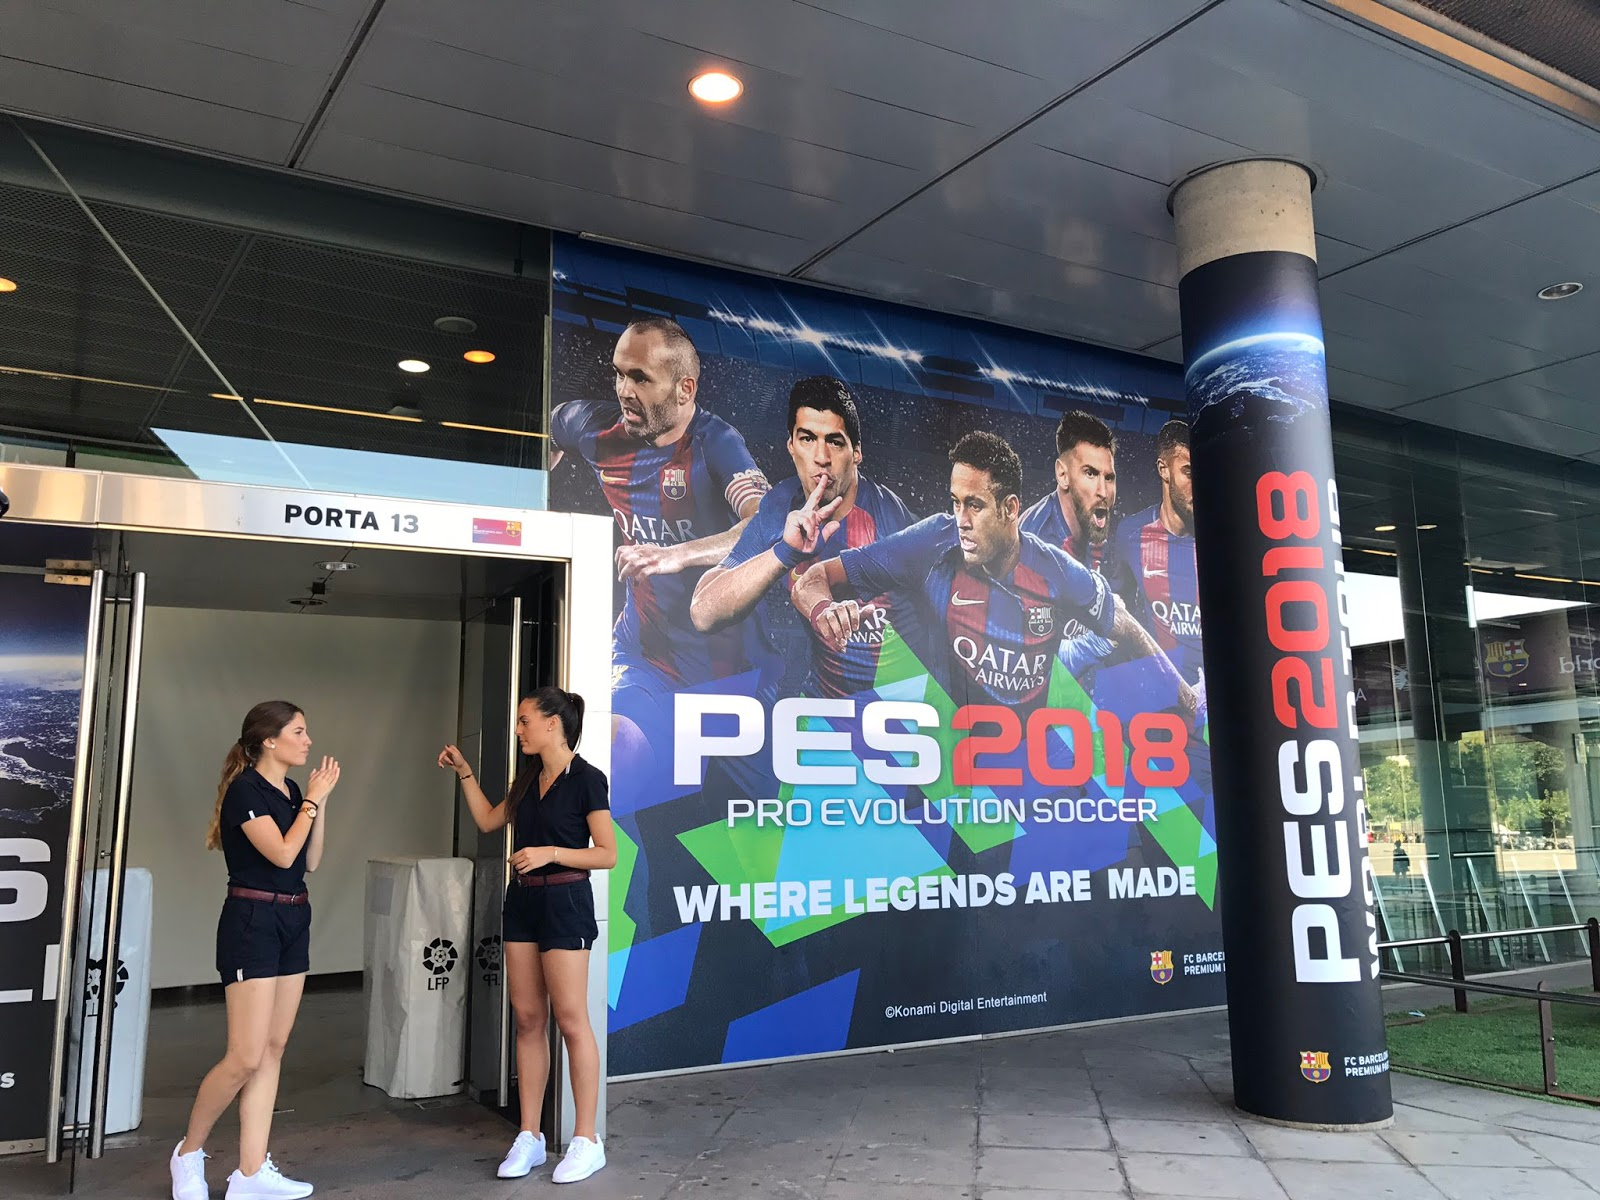 Konami Pro Evolution Soccer PES2018 World Tour #WhereLegendsAreMade [image by @officialpes]